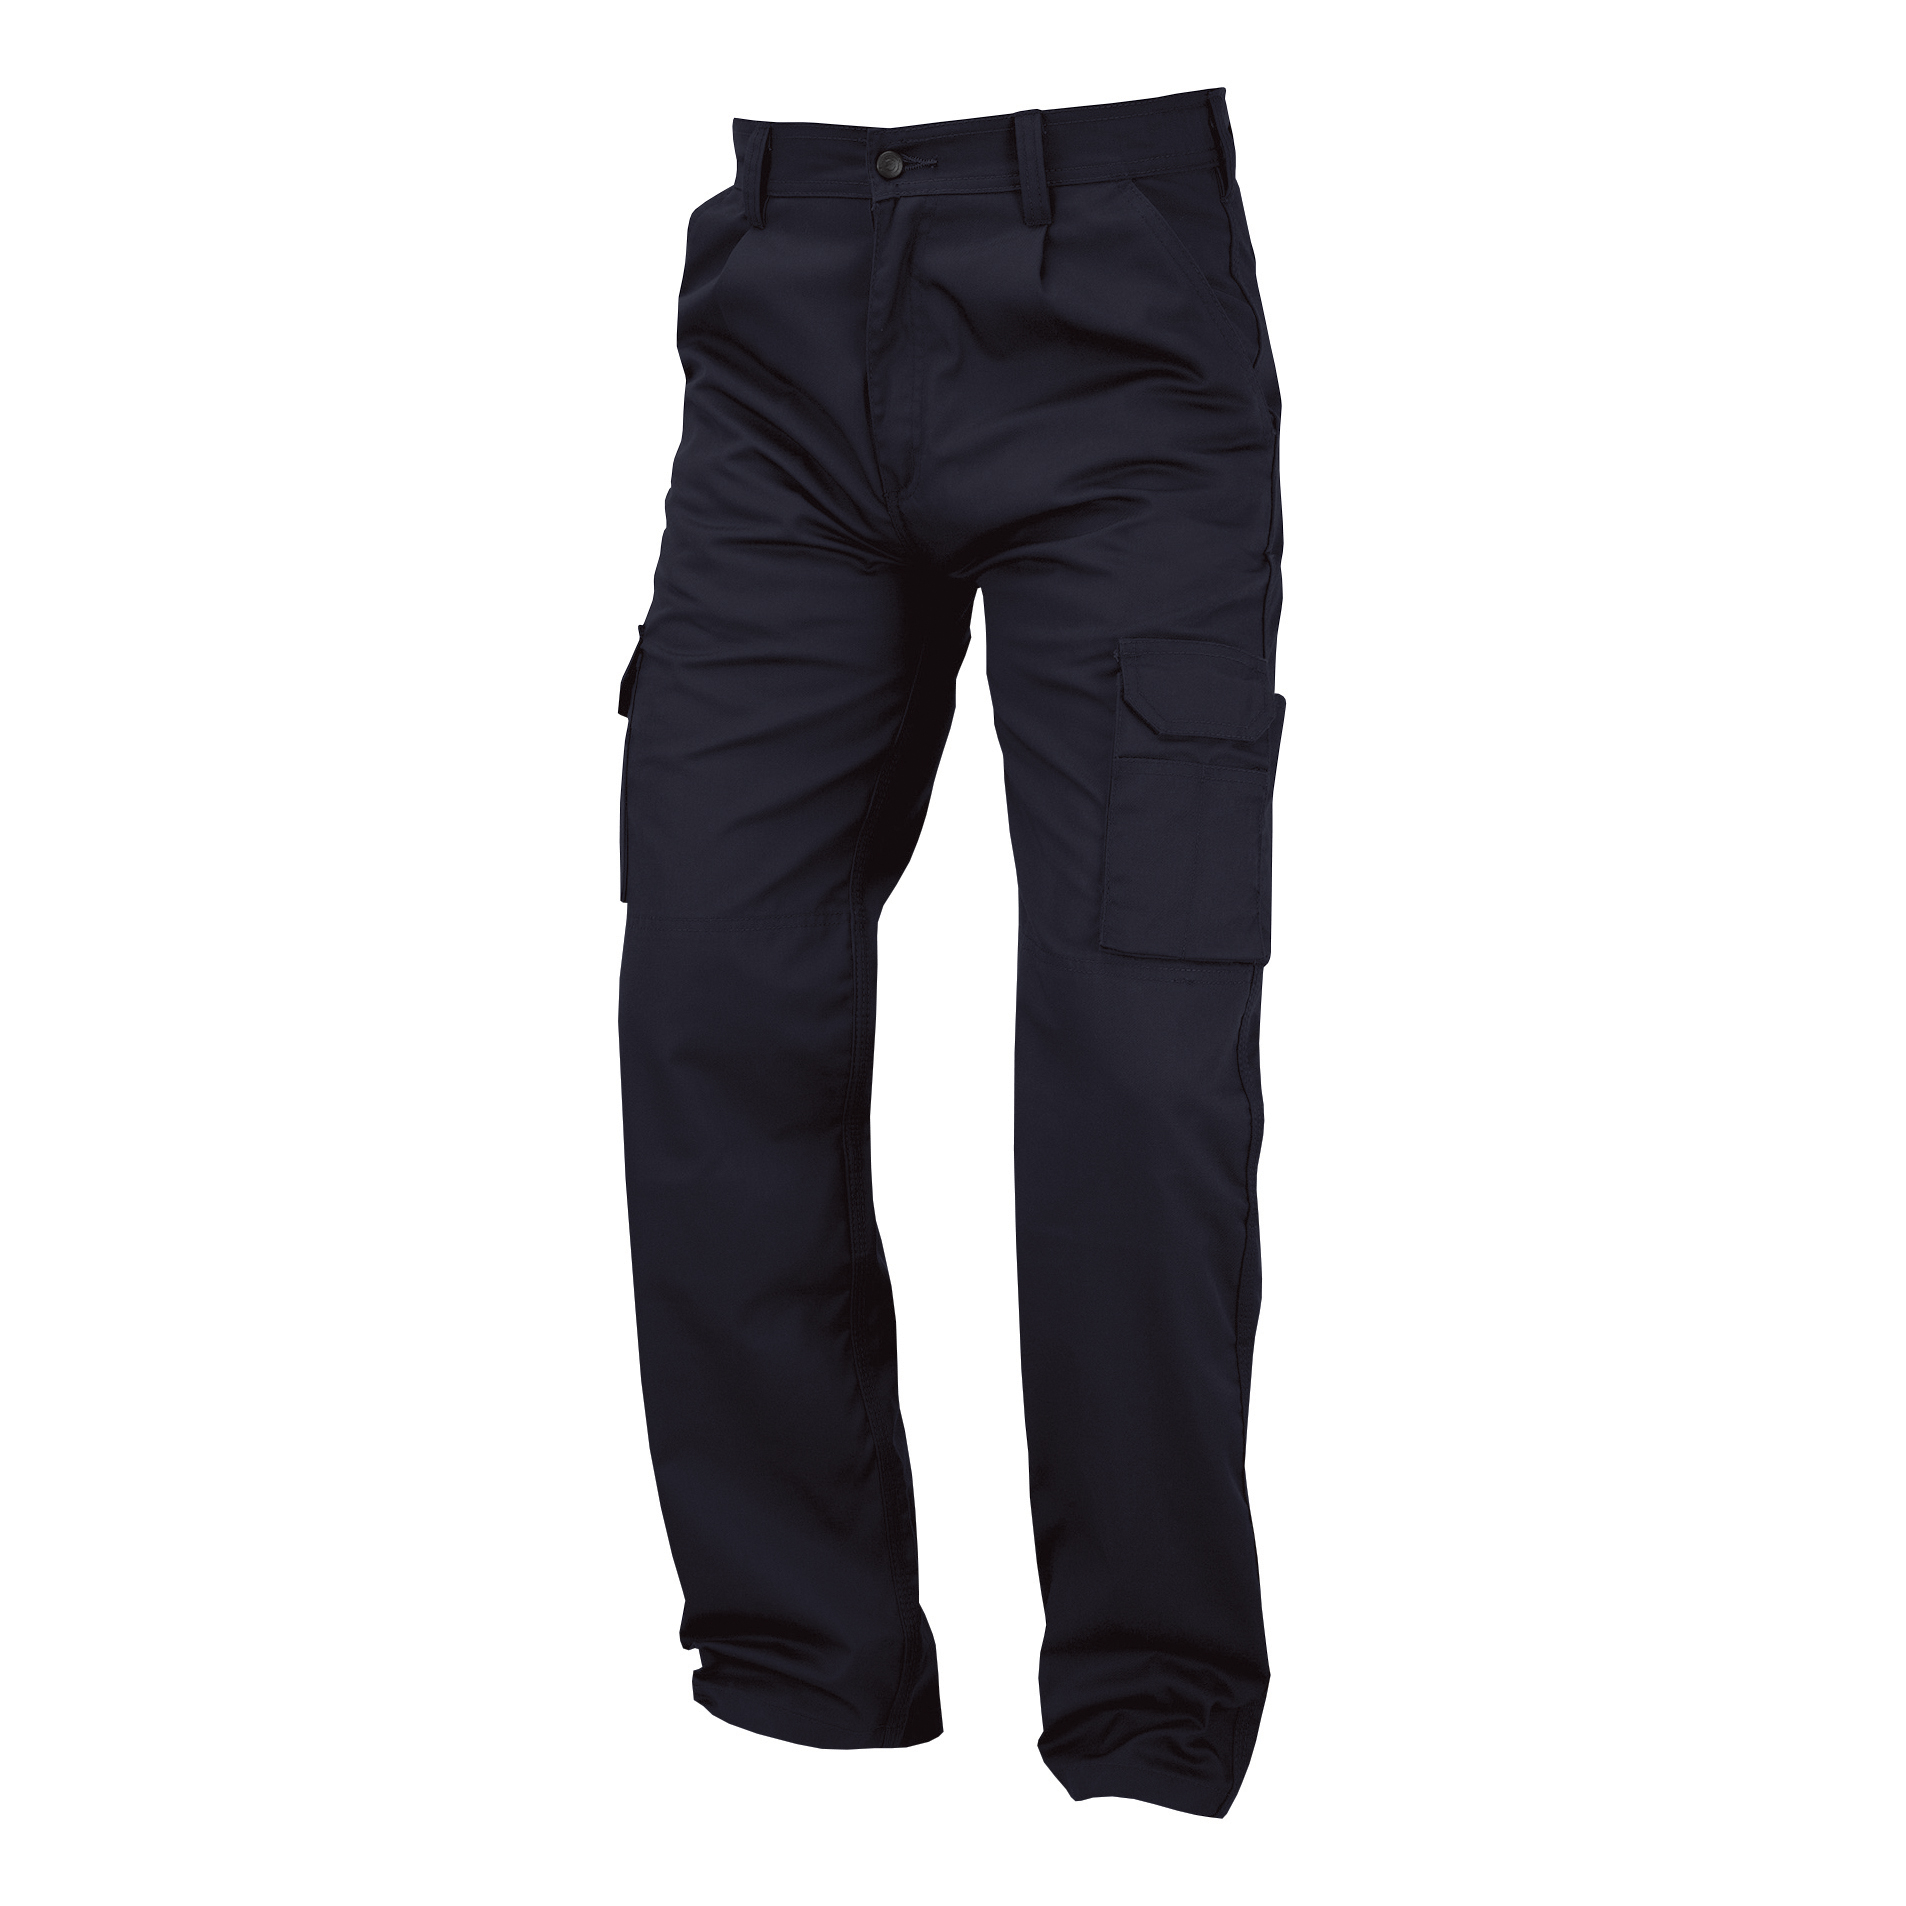 Combat Trousers Multifunctional 46in Regular Navy Blue Ref PCTHWN46 *Approx 3 Day Leadtime*